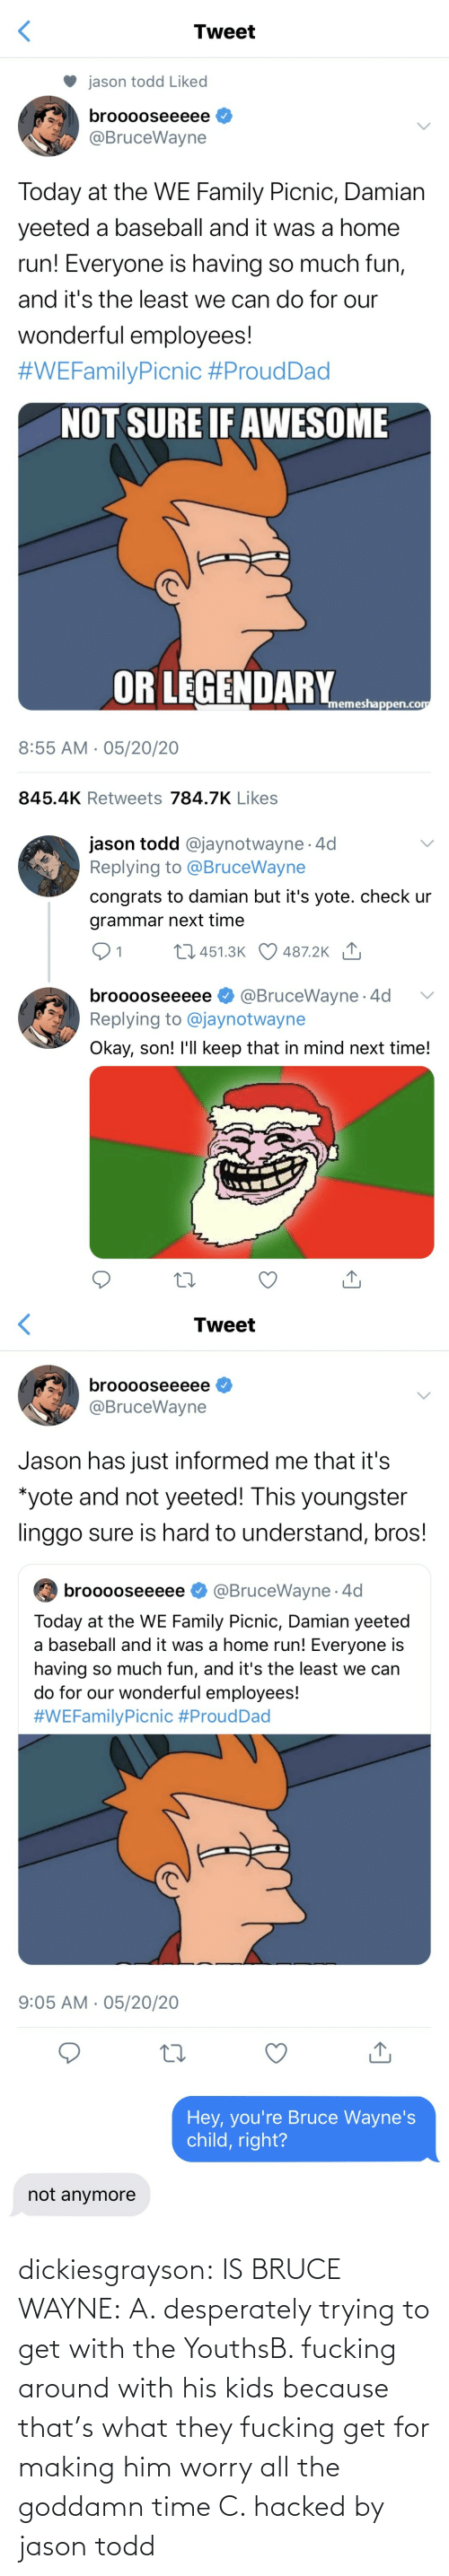 What They: dickiesgrayson:  IS BRUCE WAYNE: A. desperately trying to get with the YouthsB. fucking around with his kids because that's what they fucking get for making him worry all the goddamn time C. hacked by jason todd